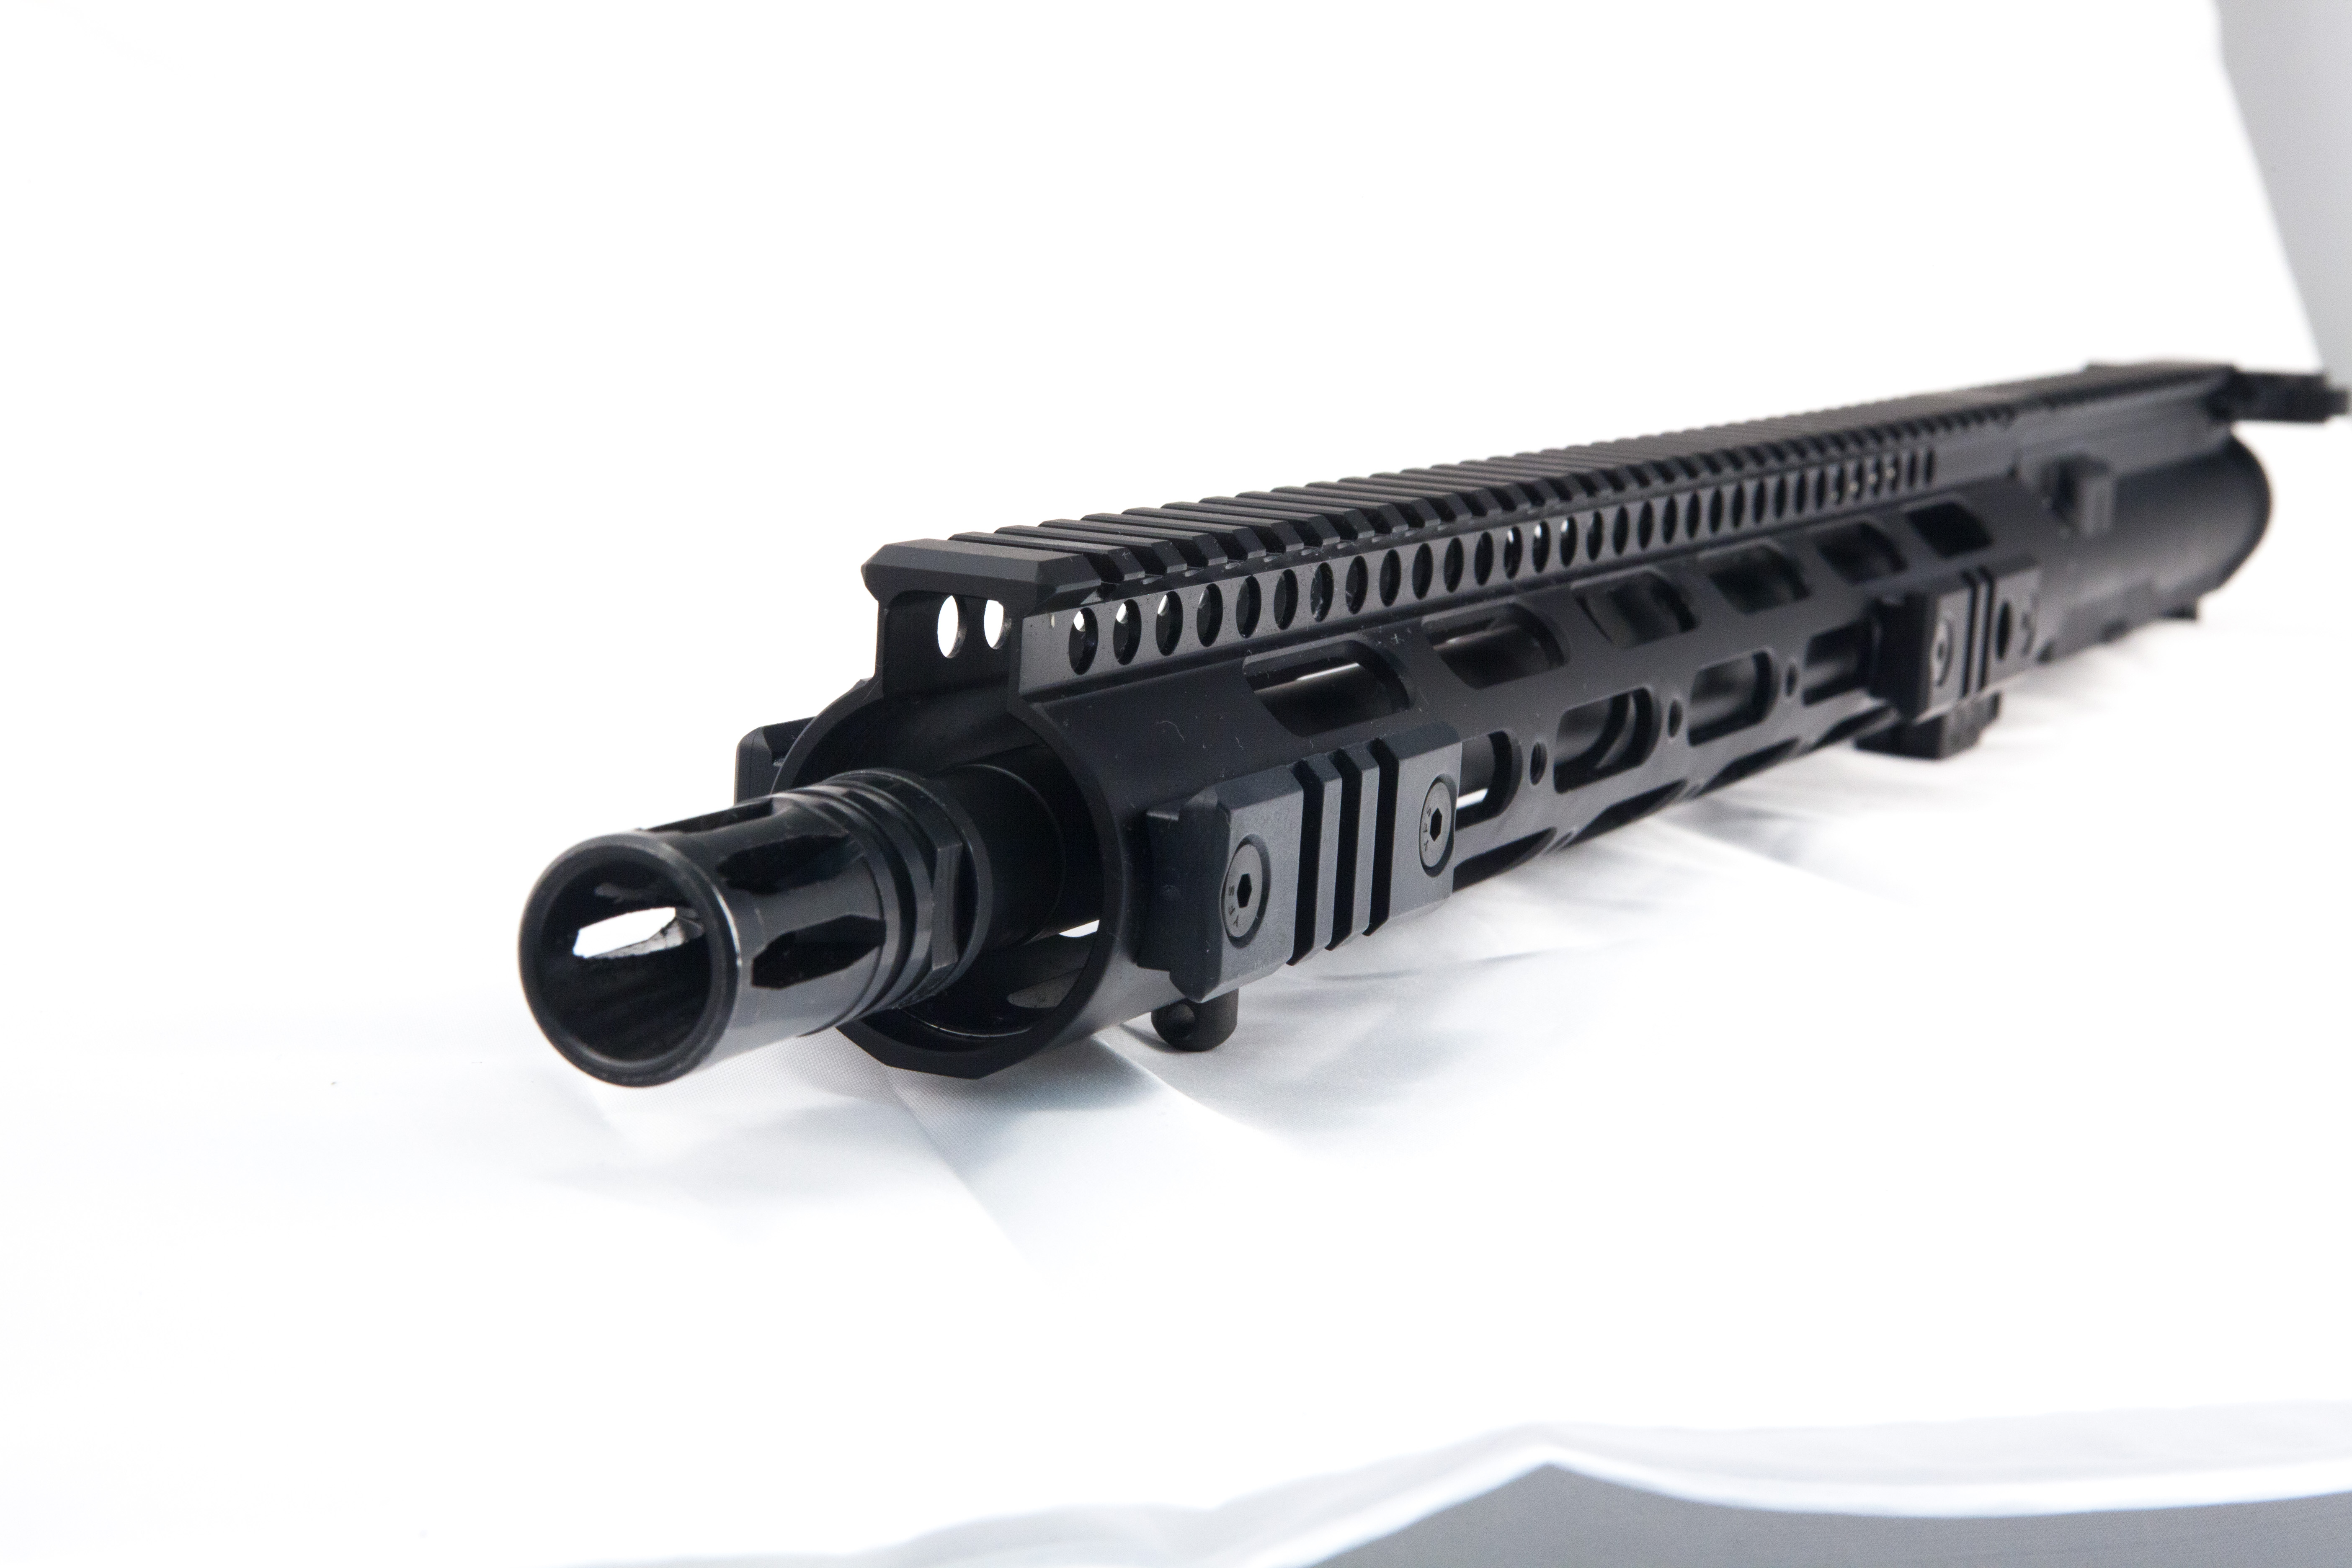 PNW Arms Signature Series 300 AAC Blackout 300BLK Complete Tactical AR 15 Upper Receiver Assembly DefenseReview.com DR 10 PNW Arms Signature Series 300 AAC Blackout (300BLK) Tactical AR 15 Carbine 16 Mid Length Upper Receiver and Ammo Combo Deal Available for 300 BLK CONUS Delivery Program Launch!